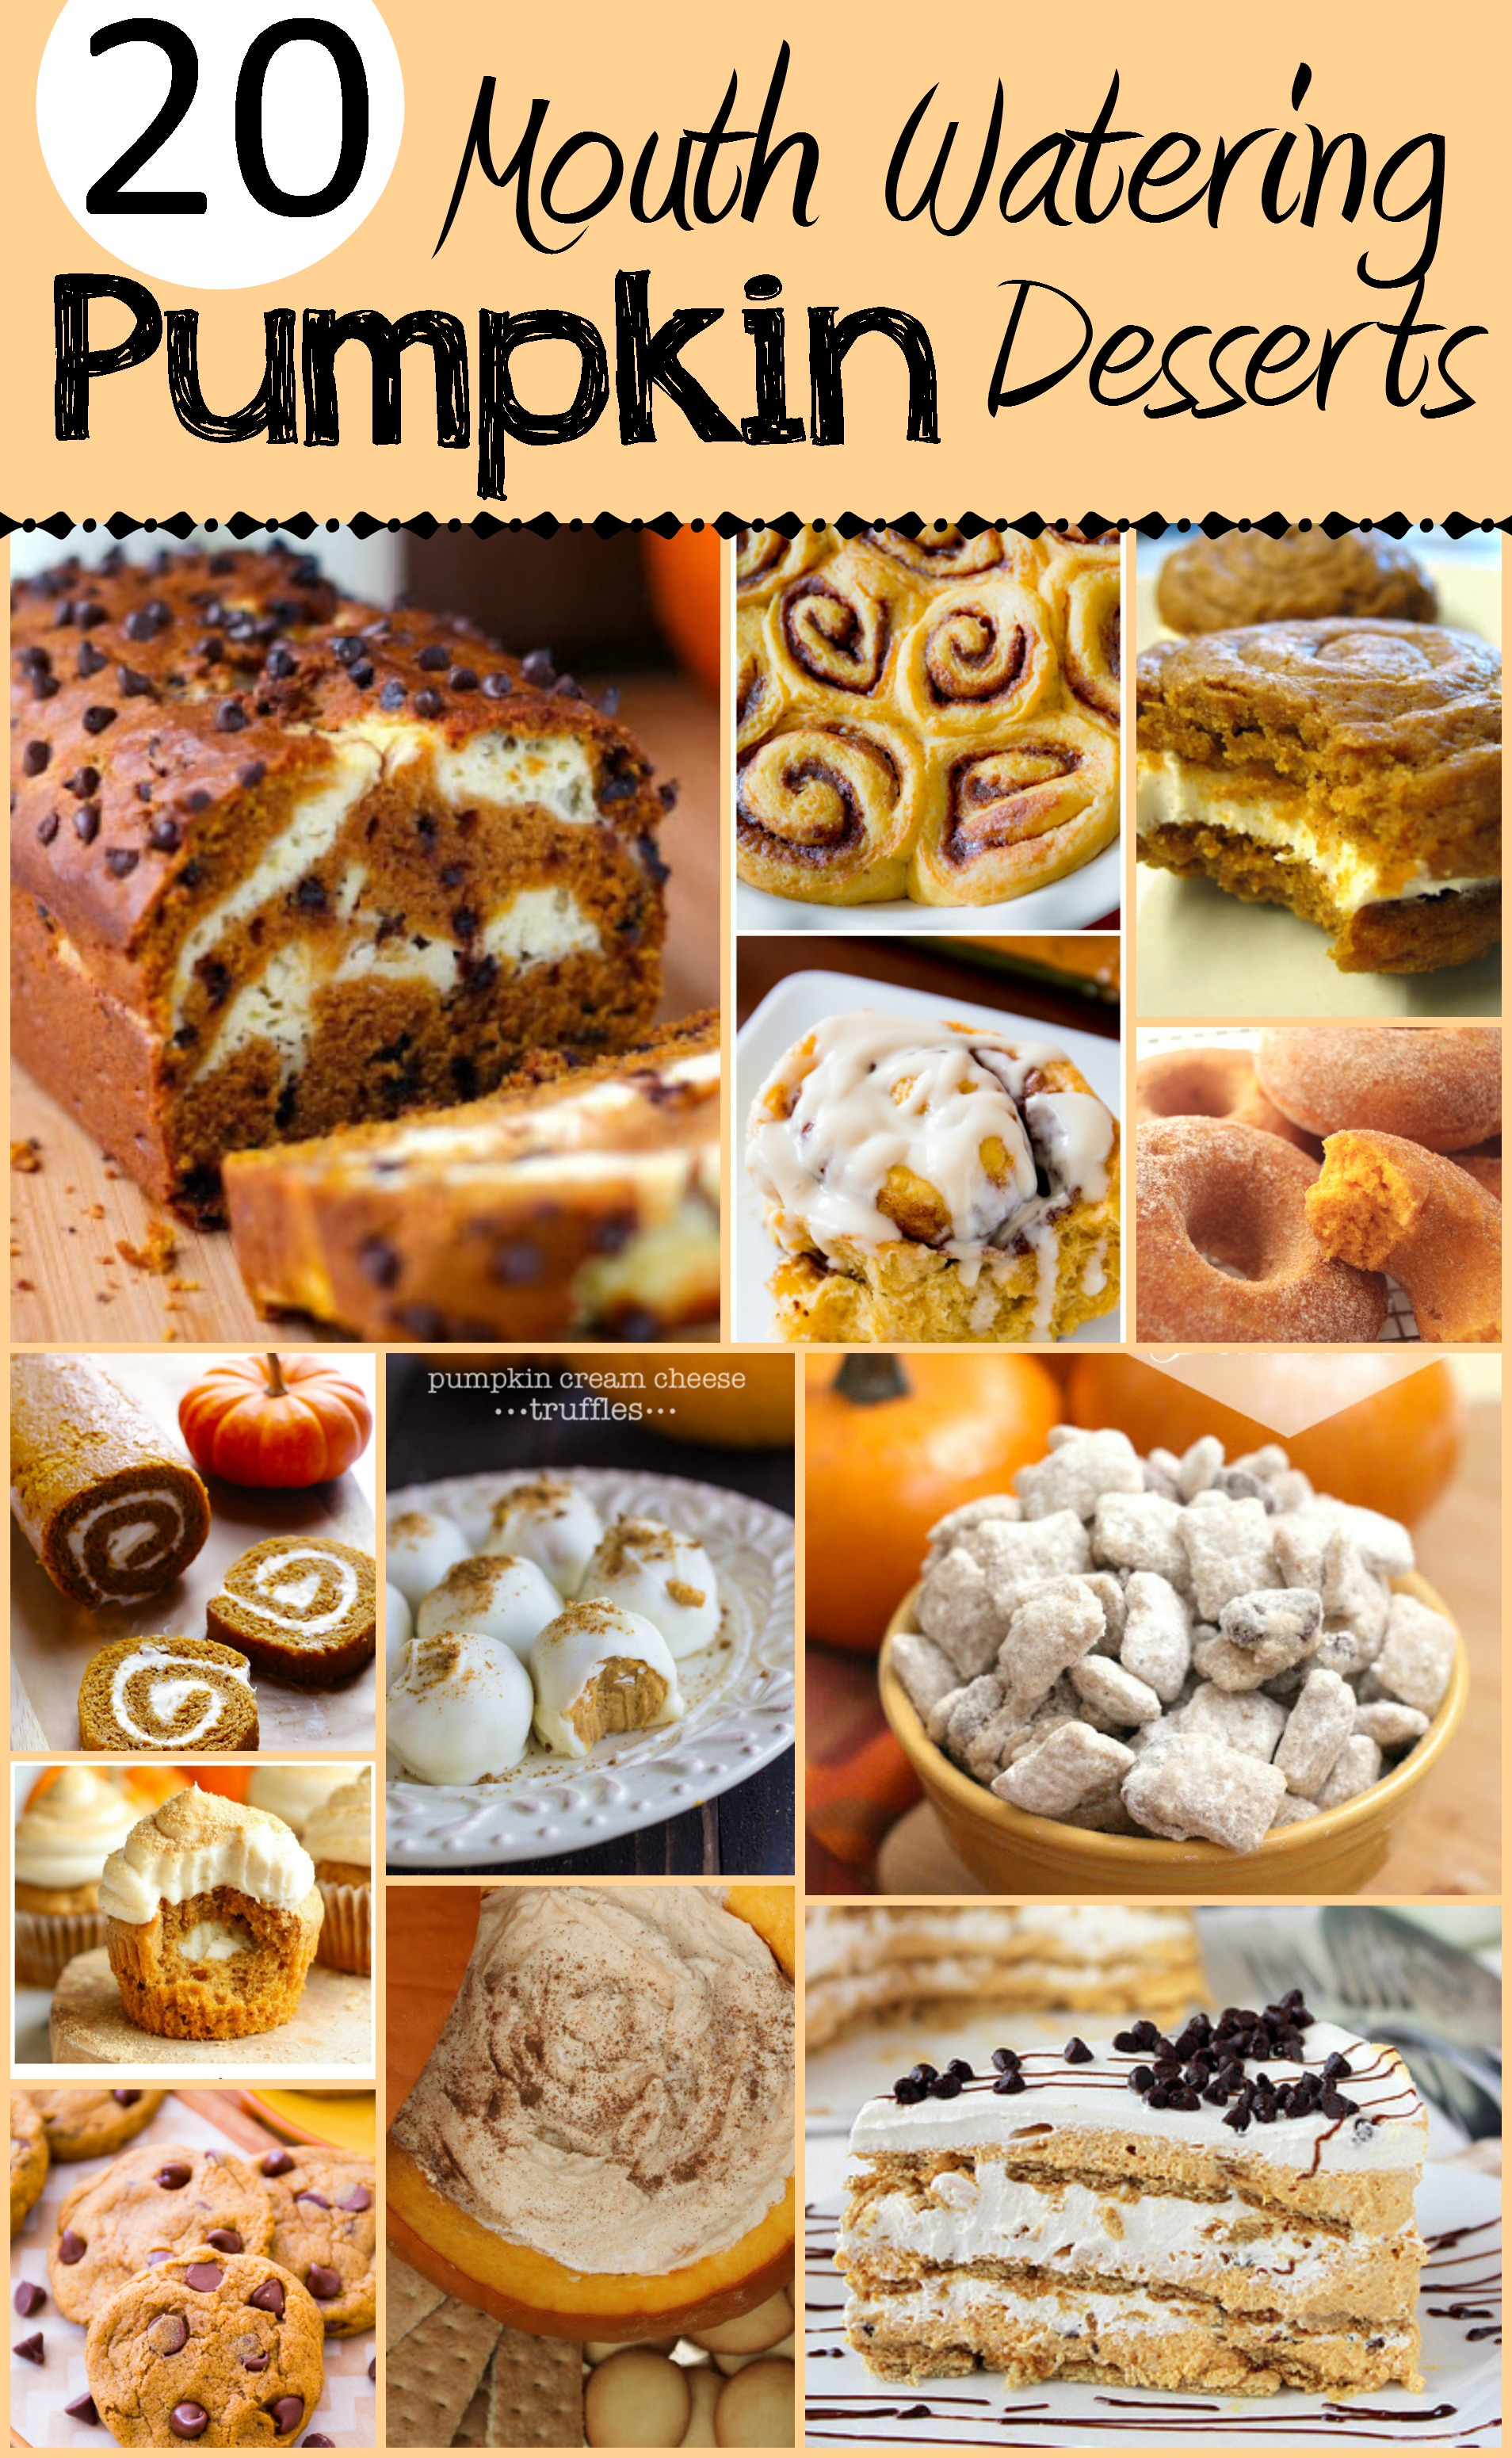 LOVE Pumpkin season! Pinning these pumpkin desserts for later!